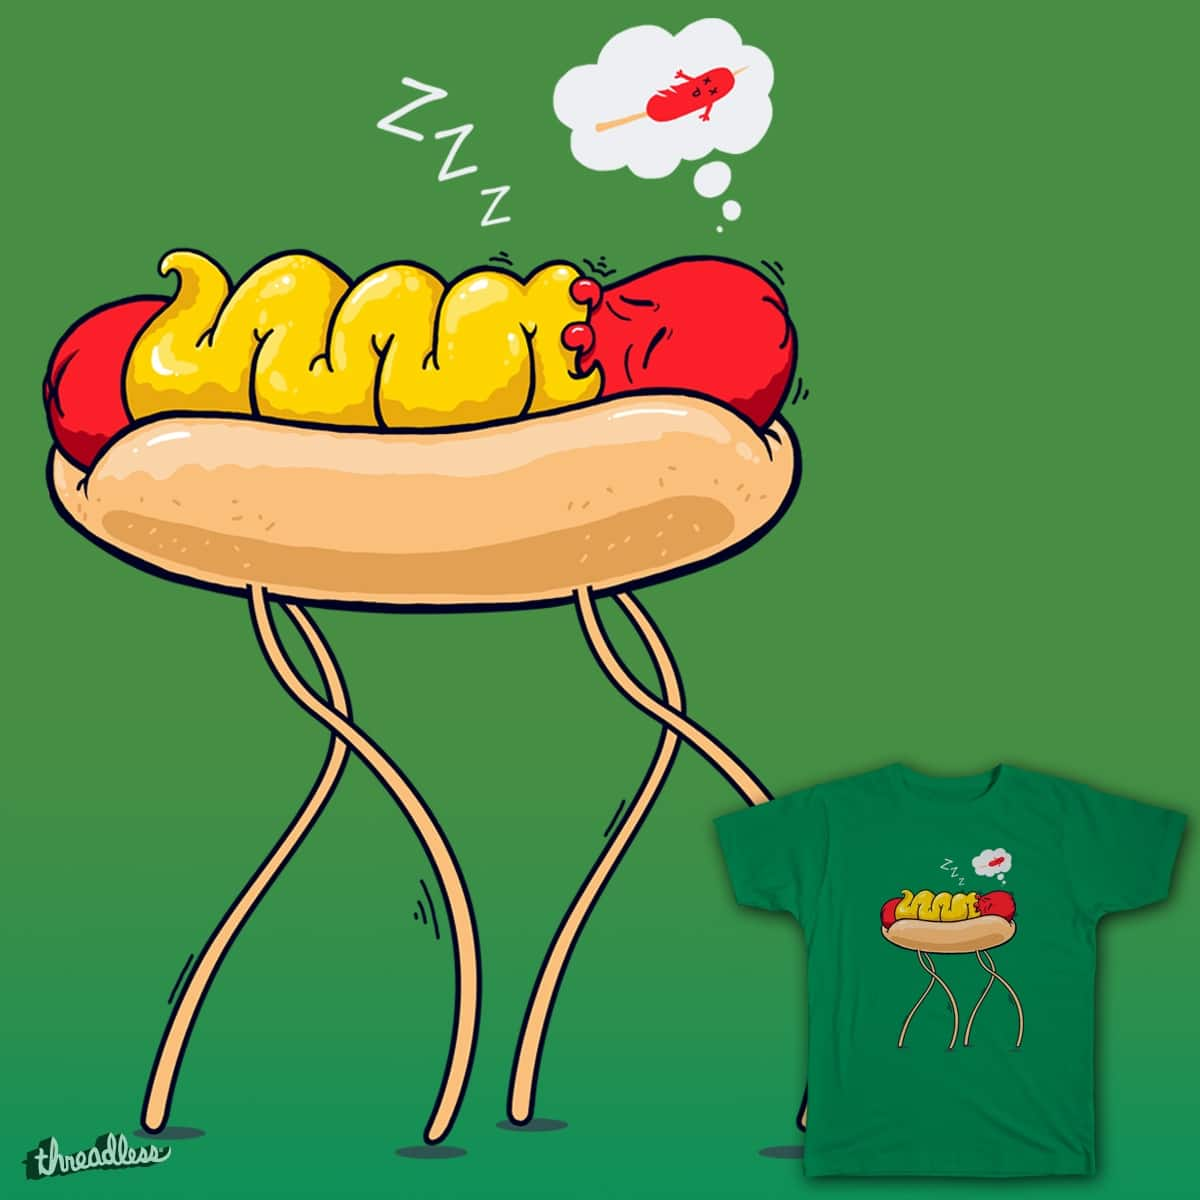 Bad Dream by gwynmichael on Threadless